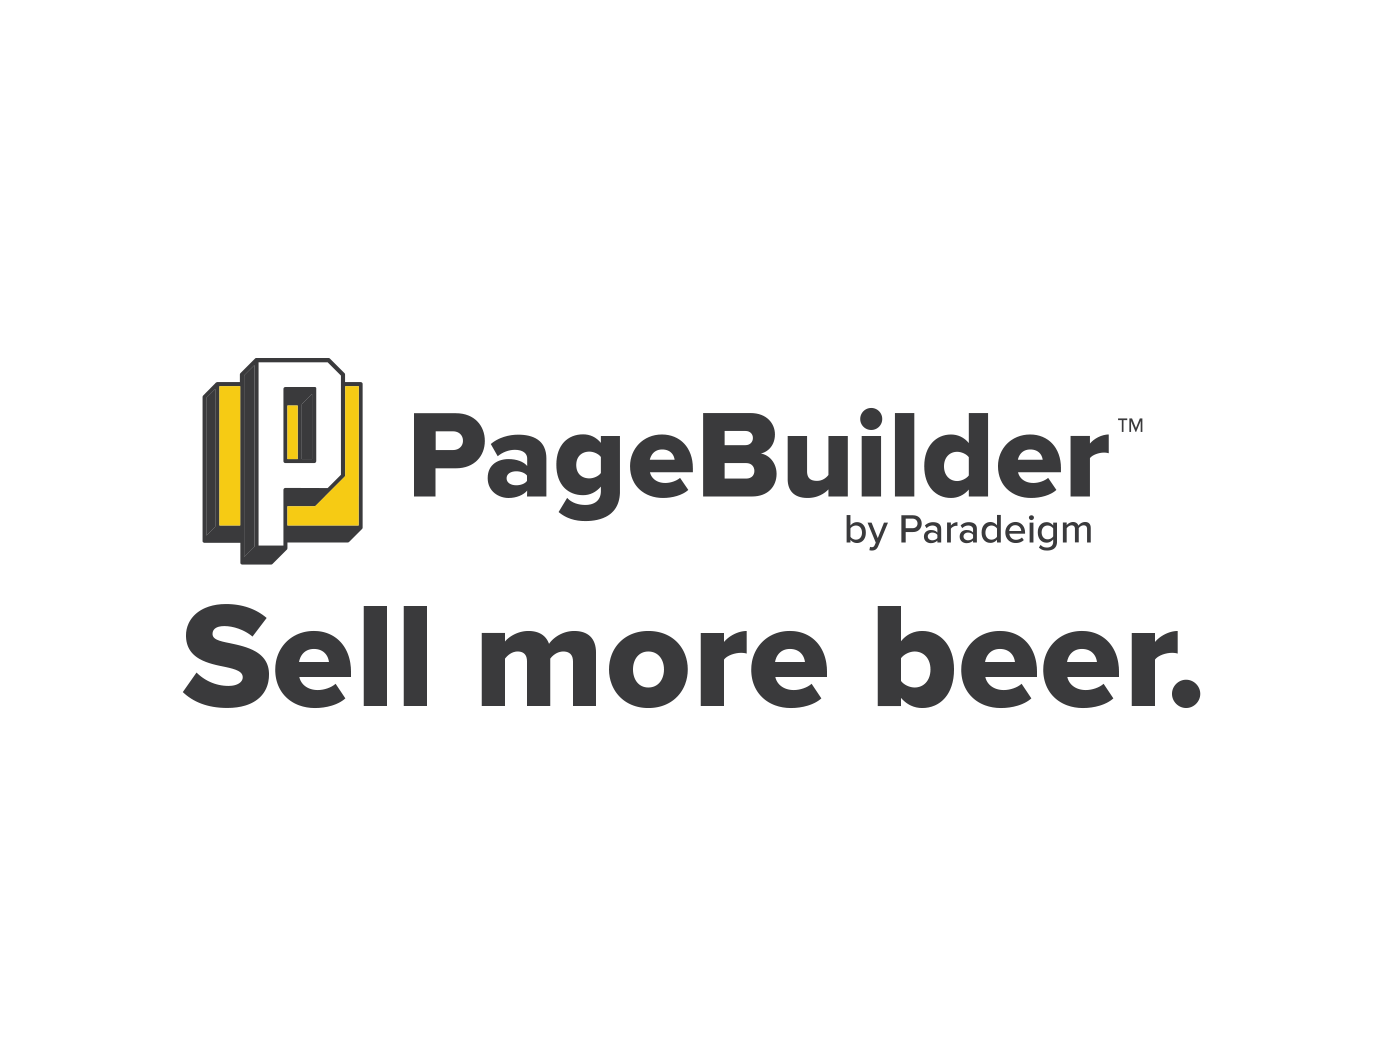 PageBuilder™ by Paradeigm